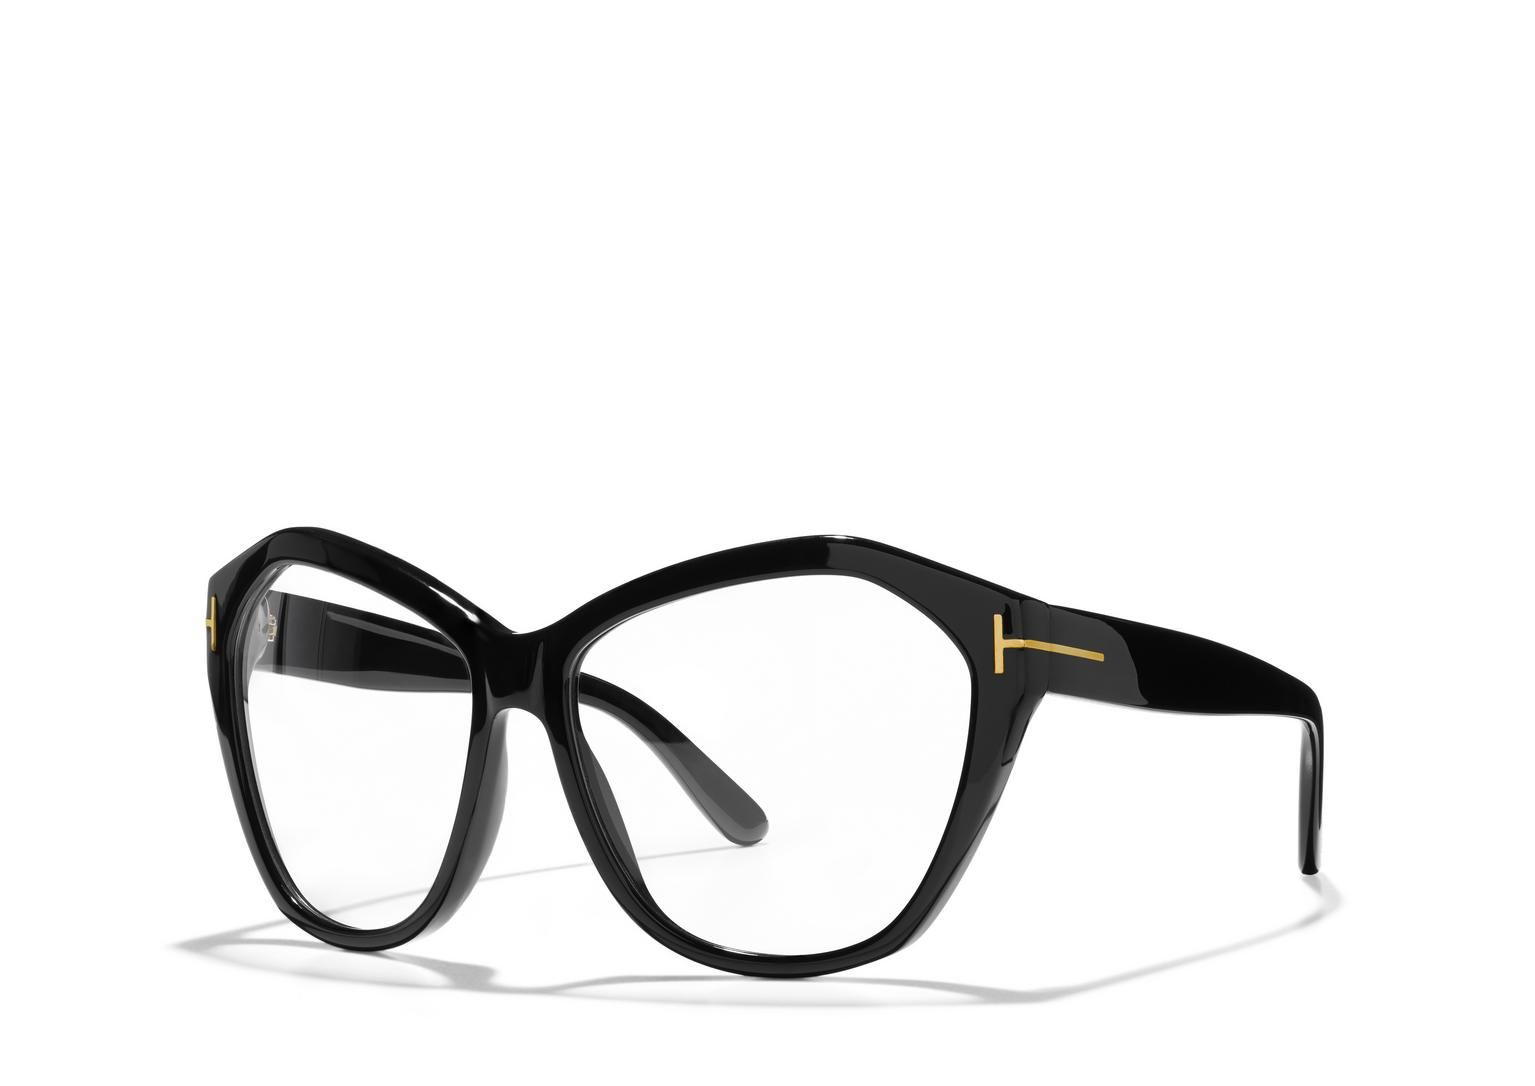 41d0f7f9fef2 4 Jill Scott s The View Tom Ford Black Reader Angelina Optical Glasses